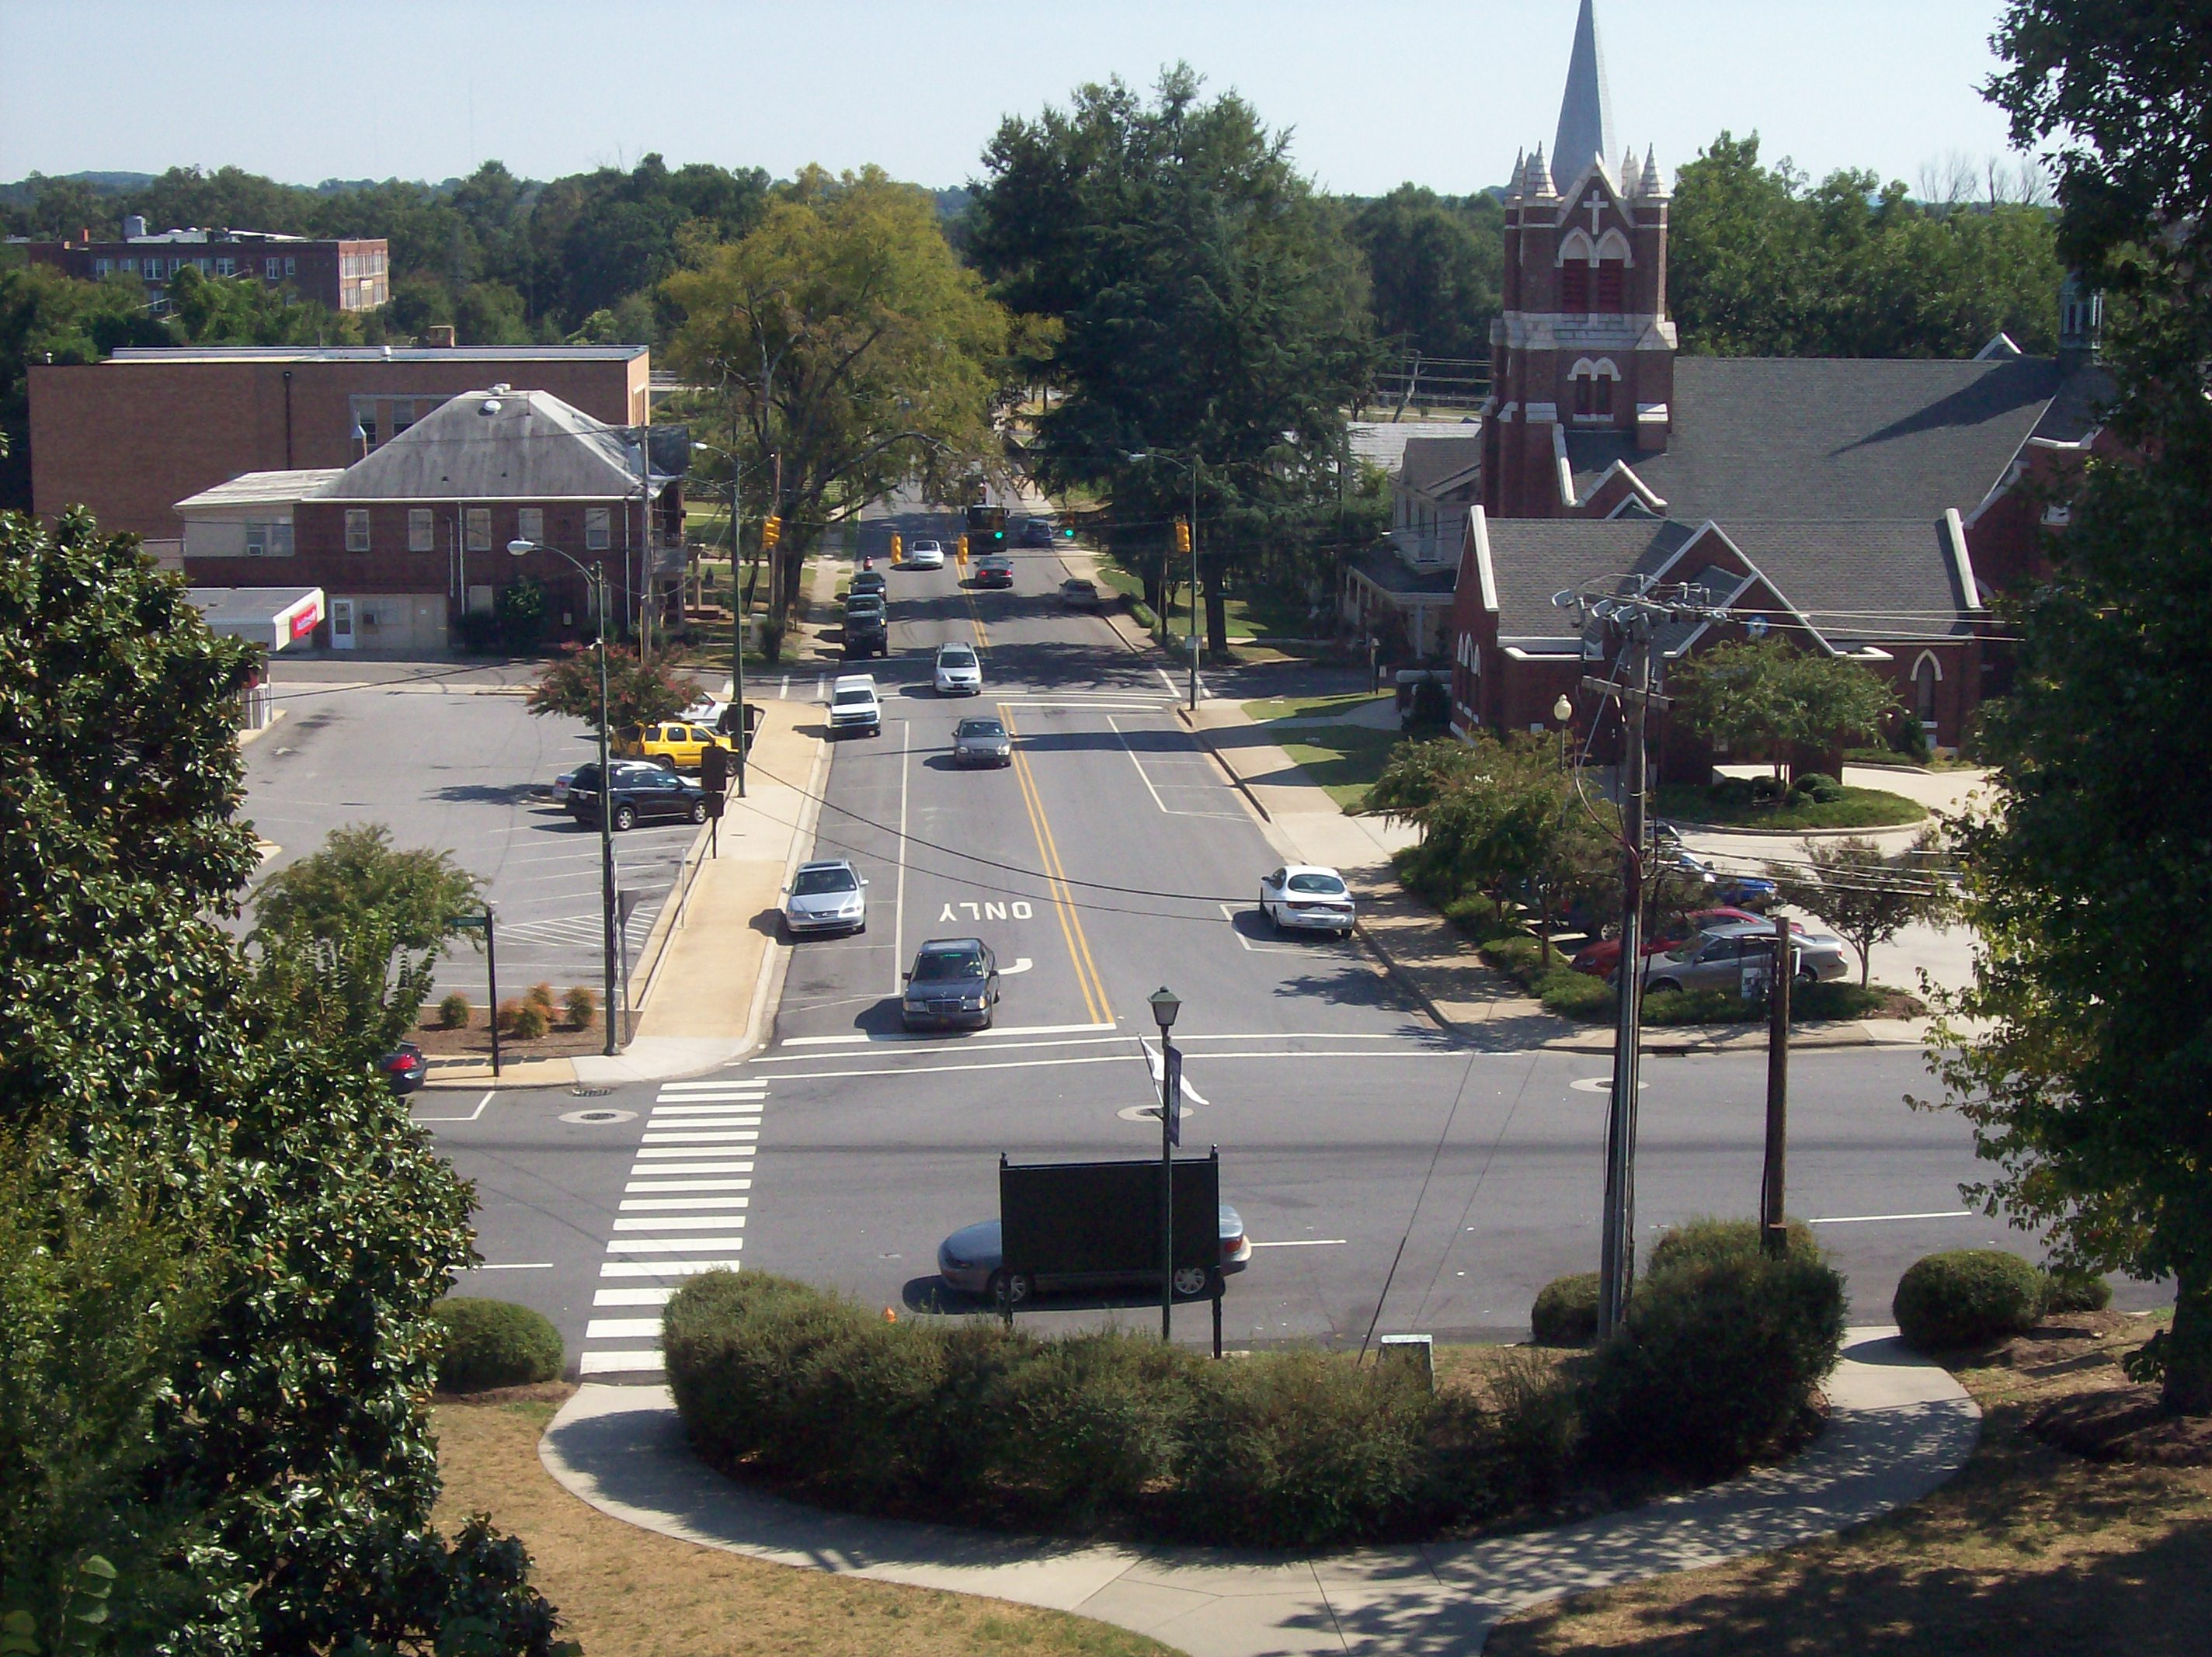 Overhead shot of Lincolnton streets with church in